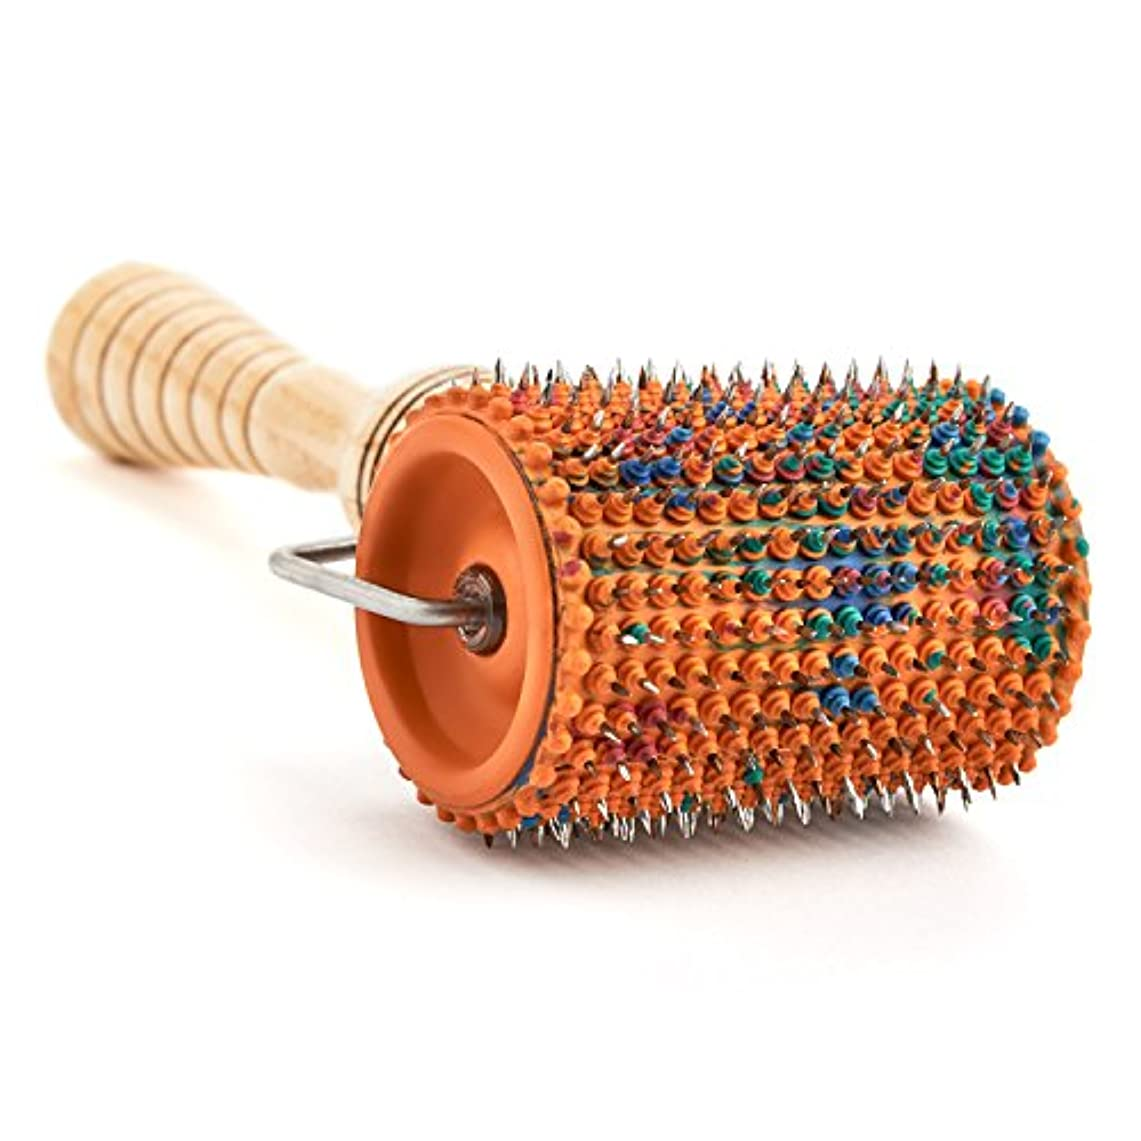 Acupuncture for Body Massage - Acupressure Applicator Lyapko Roller UNIVERSAL-M (with rubber bushings) by Lyapko